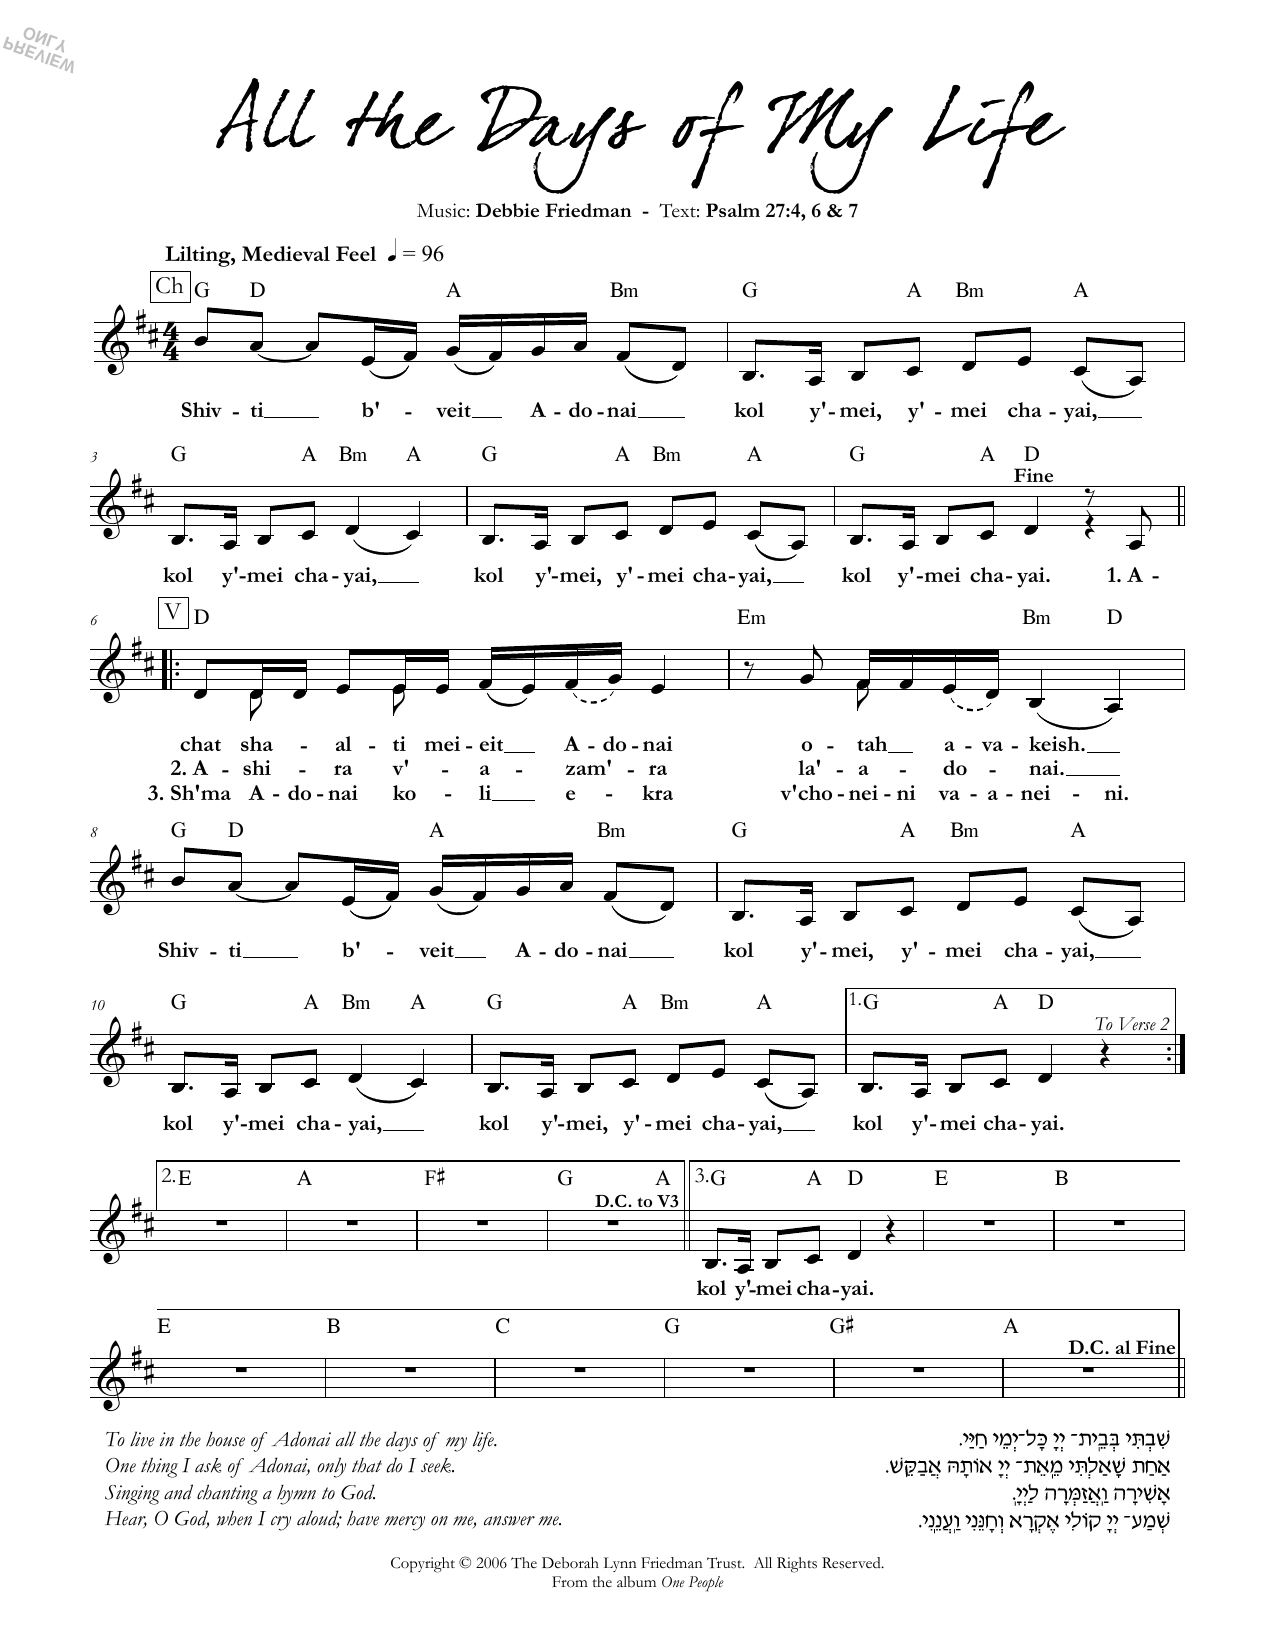 Debbie Friedman All the Days of My Life sheet music preview music notes and score for Lead Sheet / Fake Book including 1 page(s)